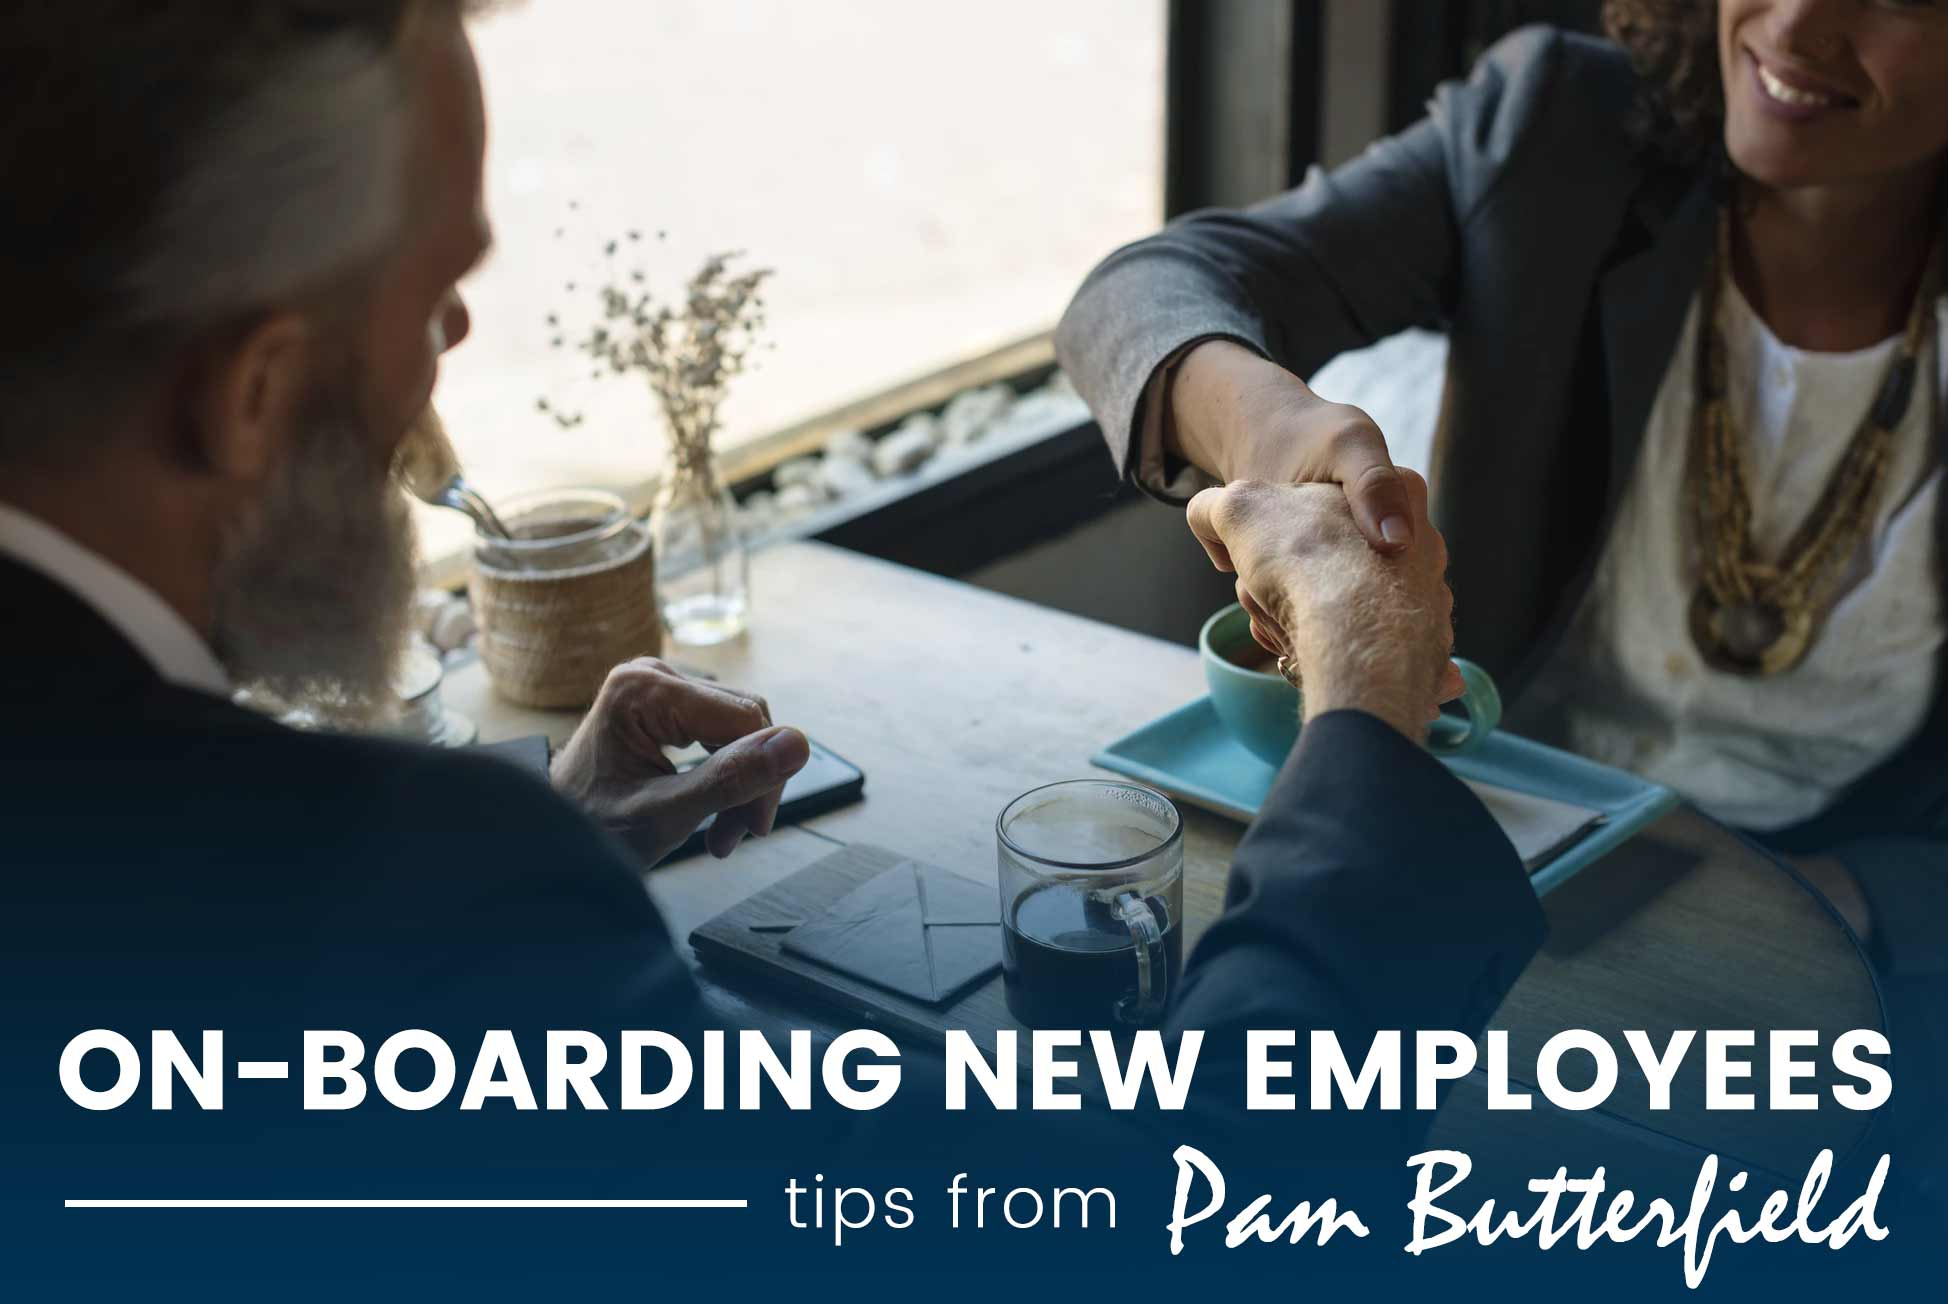 If You Don't Know How to On-Board New Employees, You're Not Alone